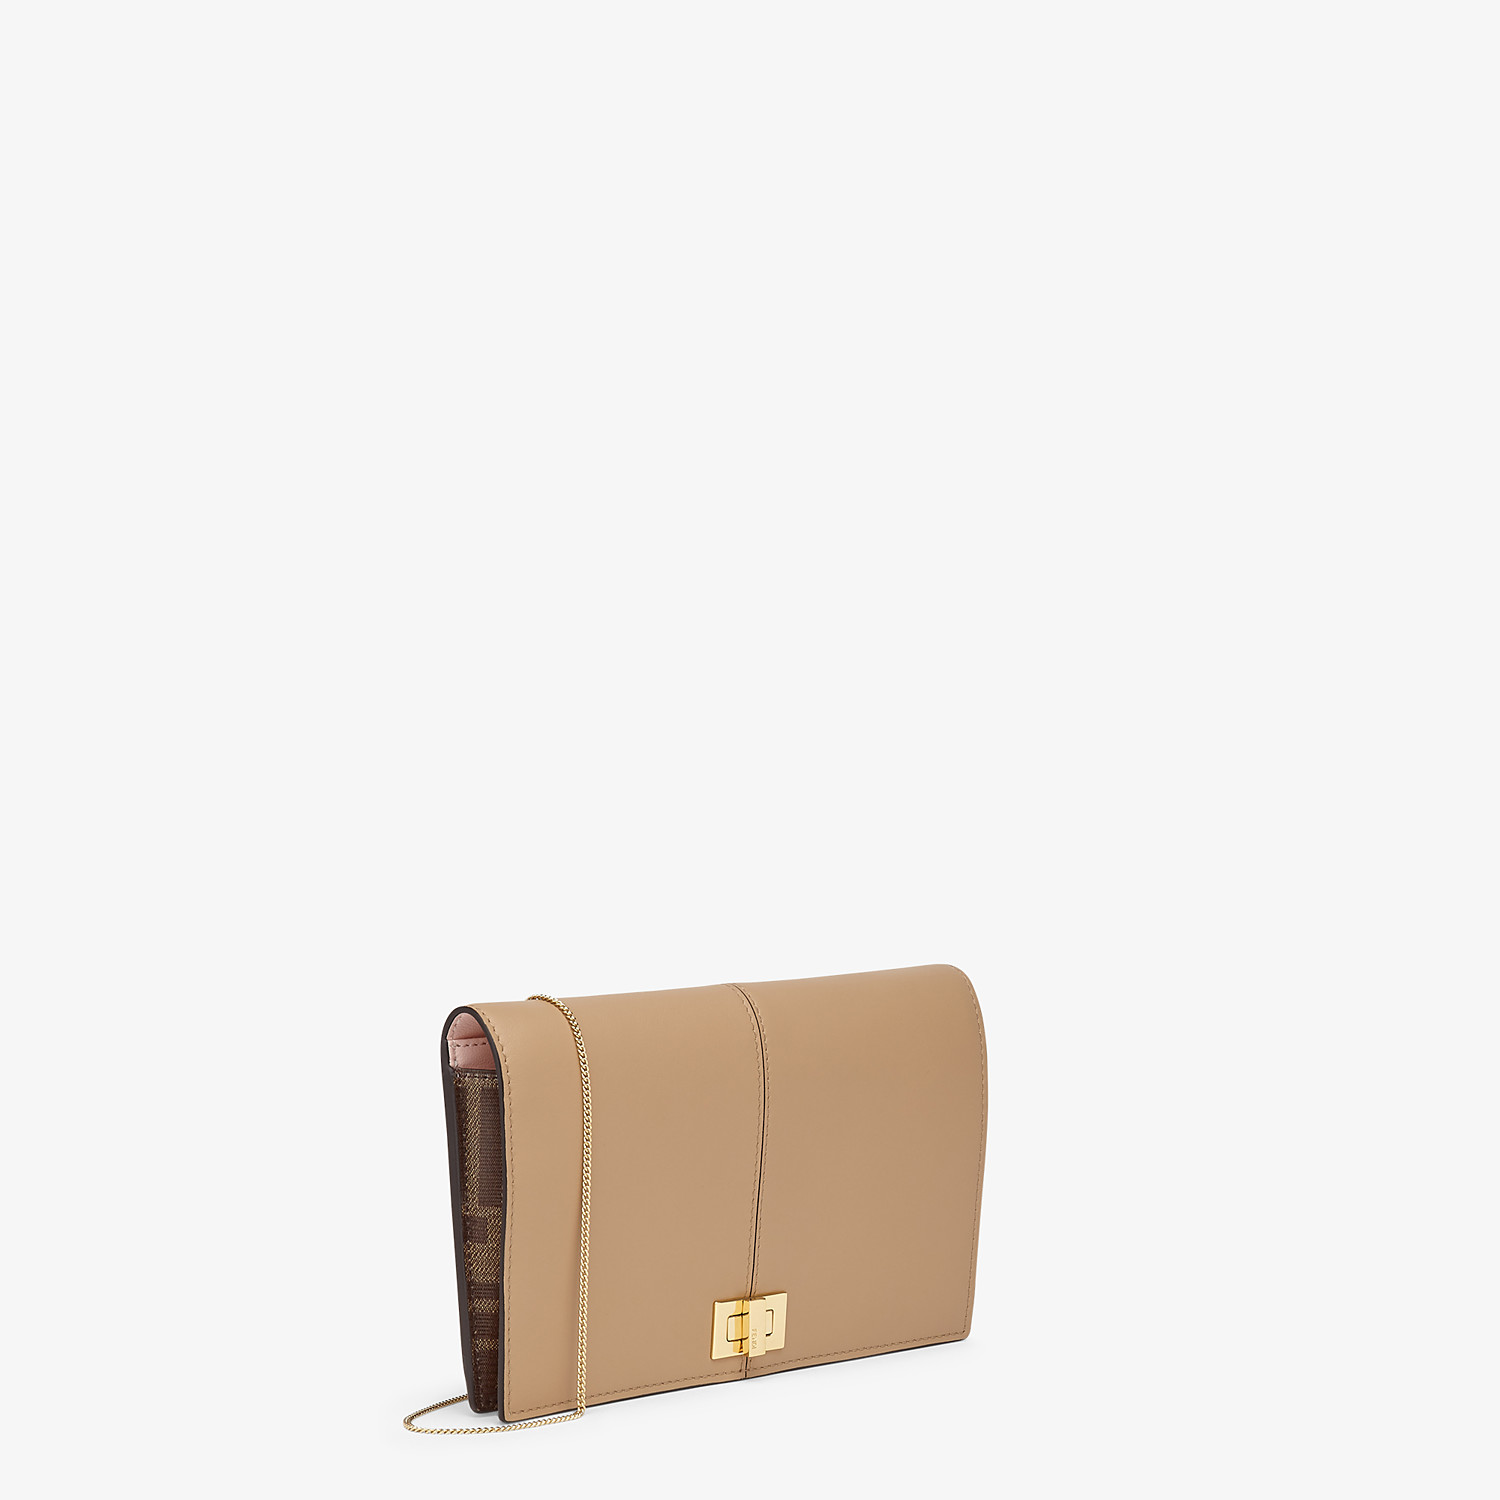 FENDI WALLET ON CHAIN - Brown leather minibag - view 2 detail